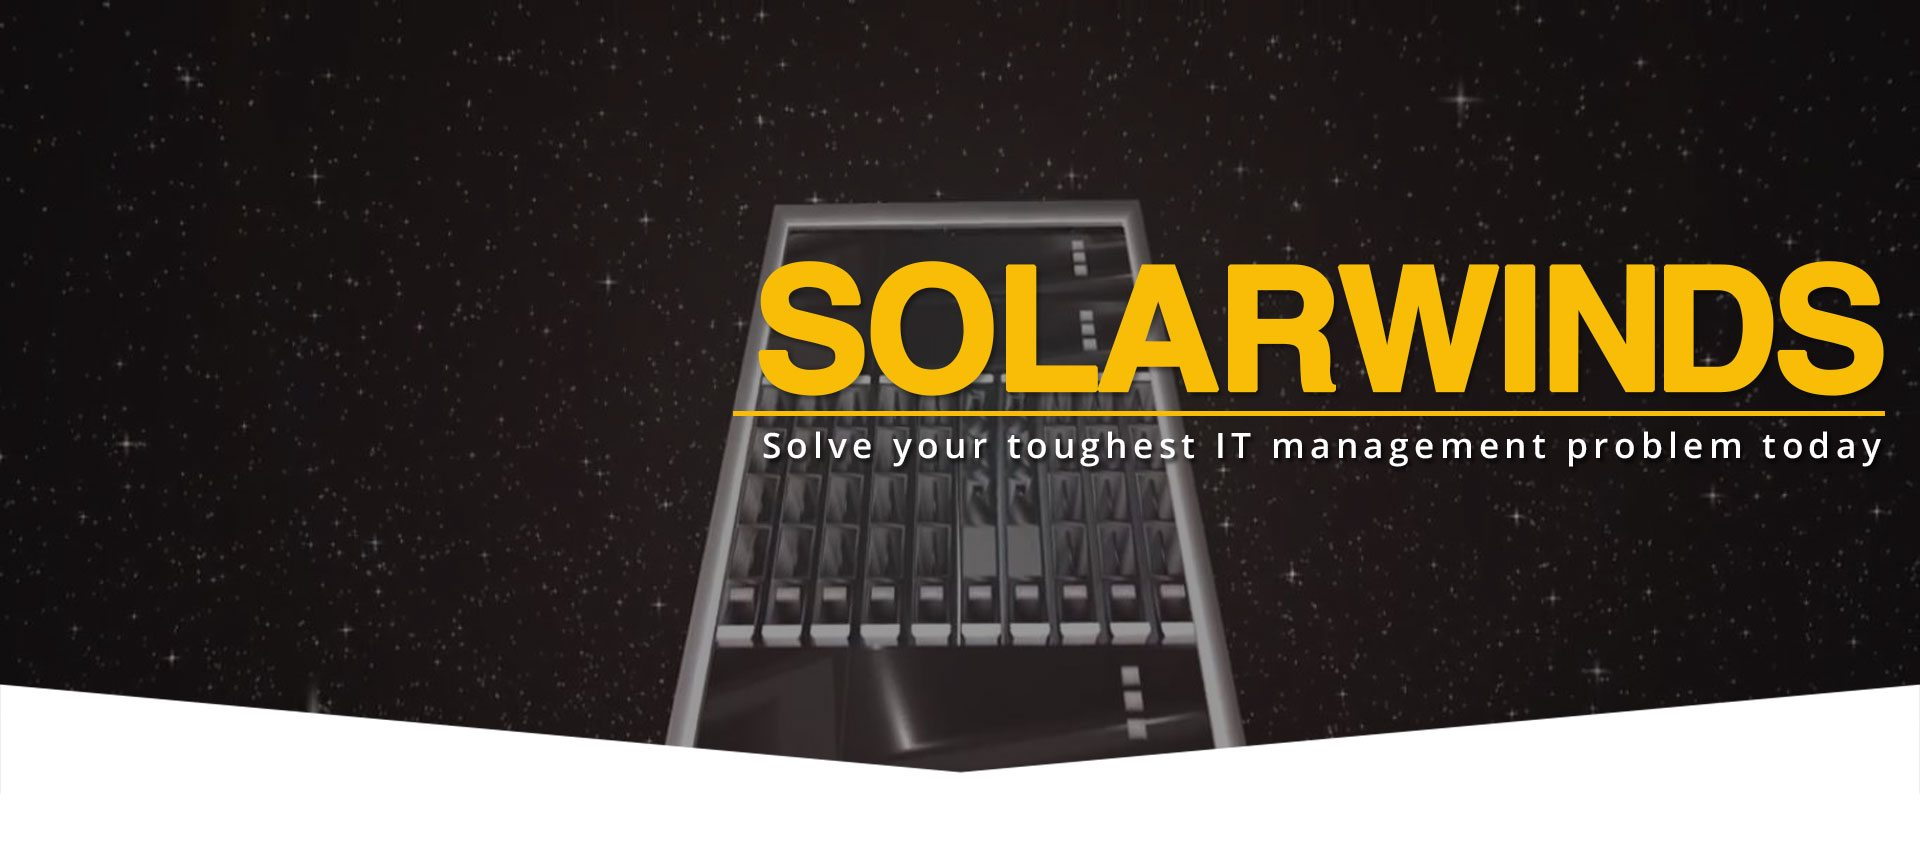 Solarwinds Engineer's Toolset Download Free Full Version